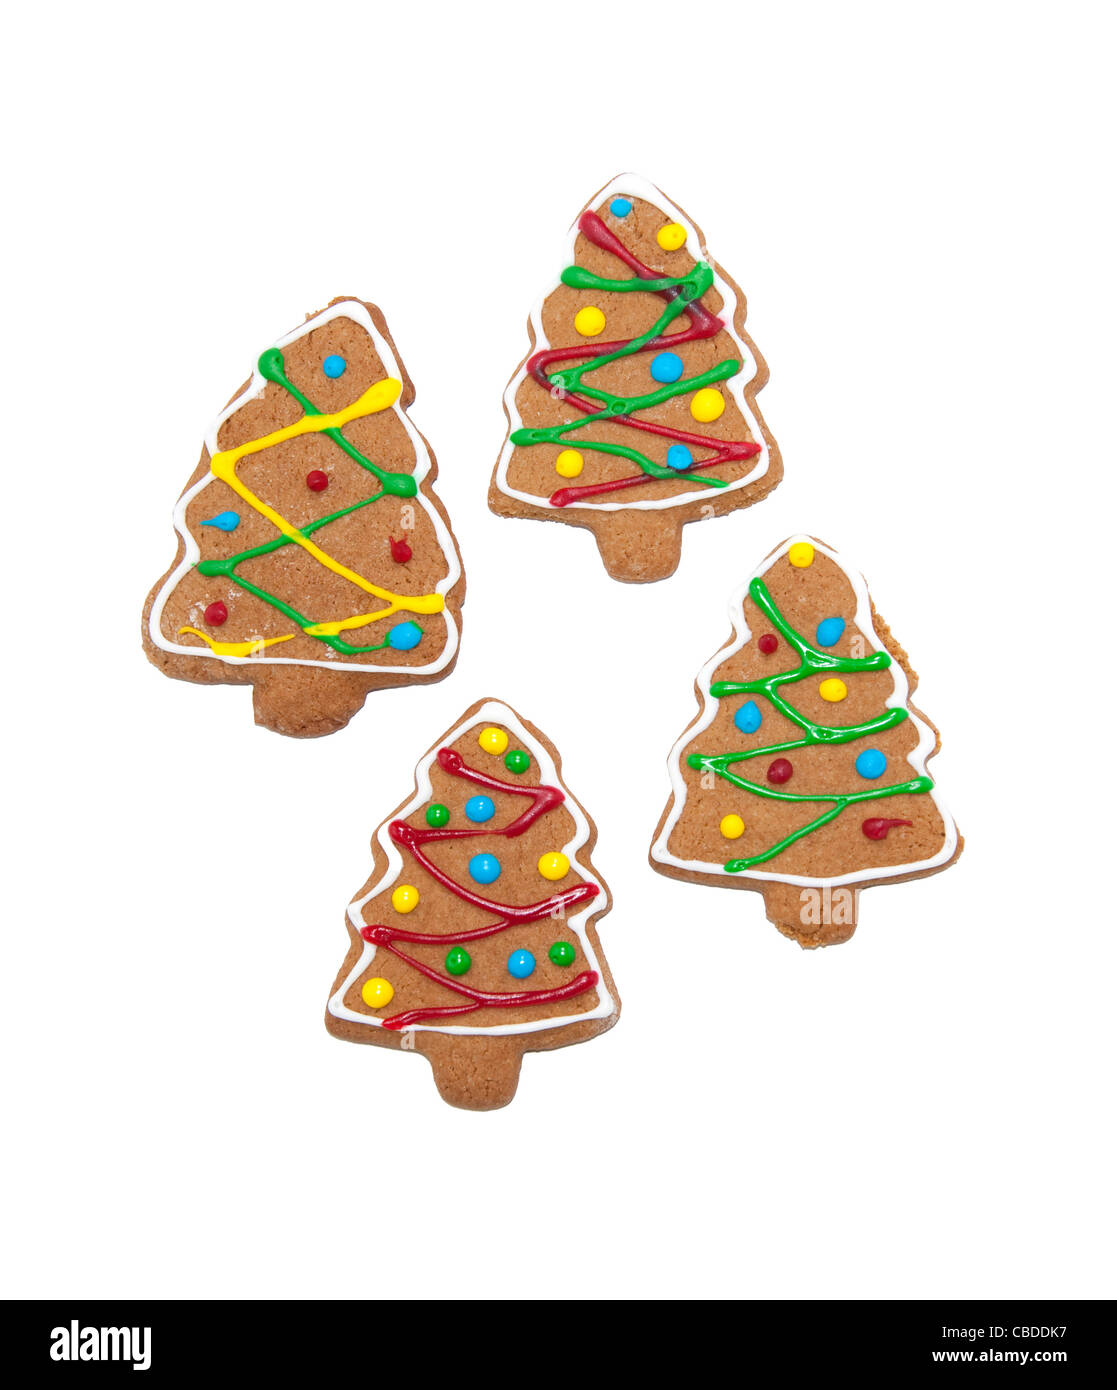 Gingerbread Christmas Trees Stock Photos & Gingerbread Christmas ...